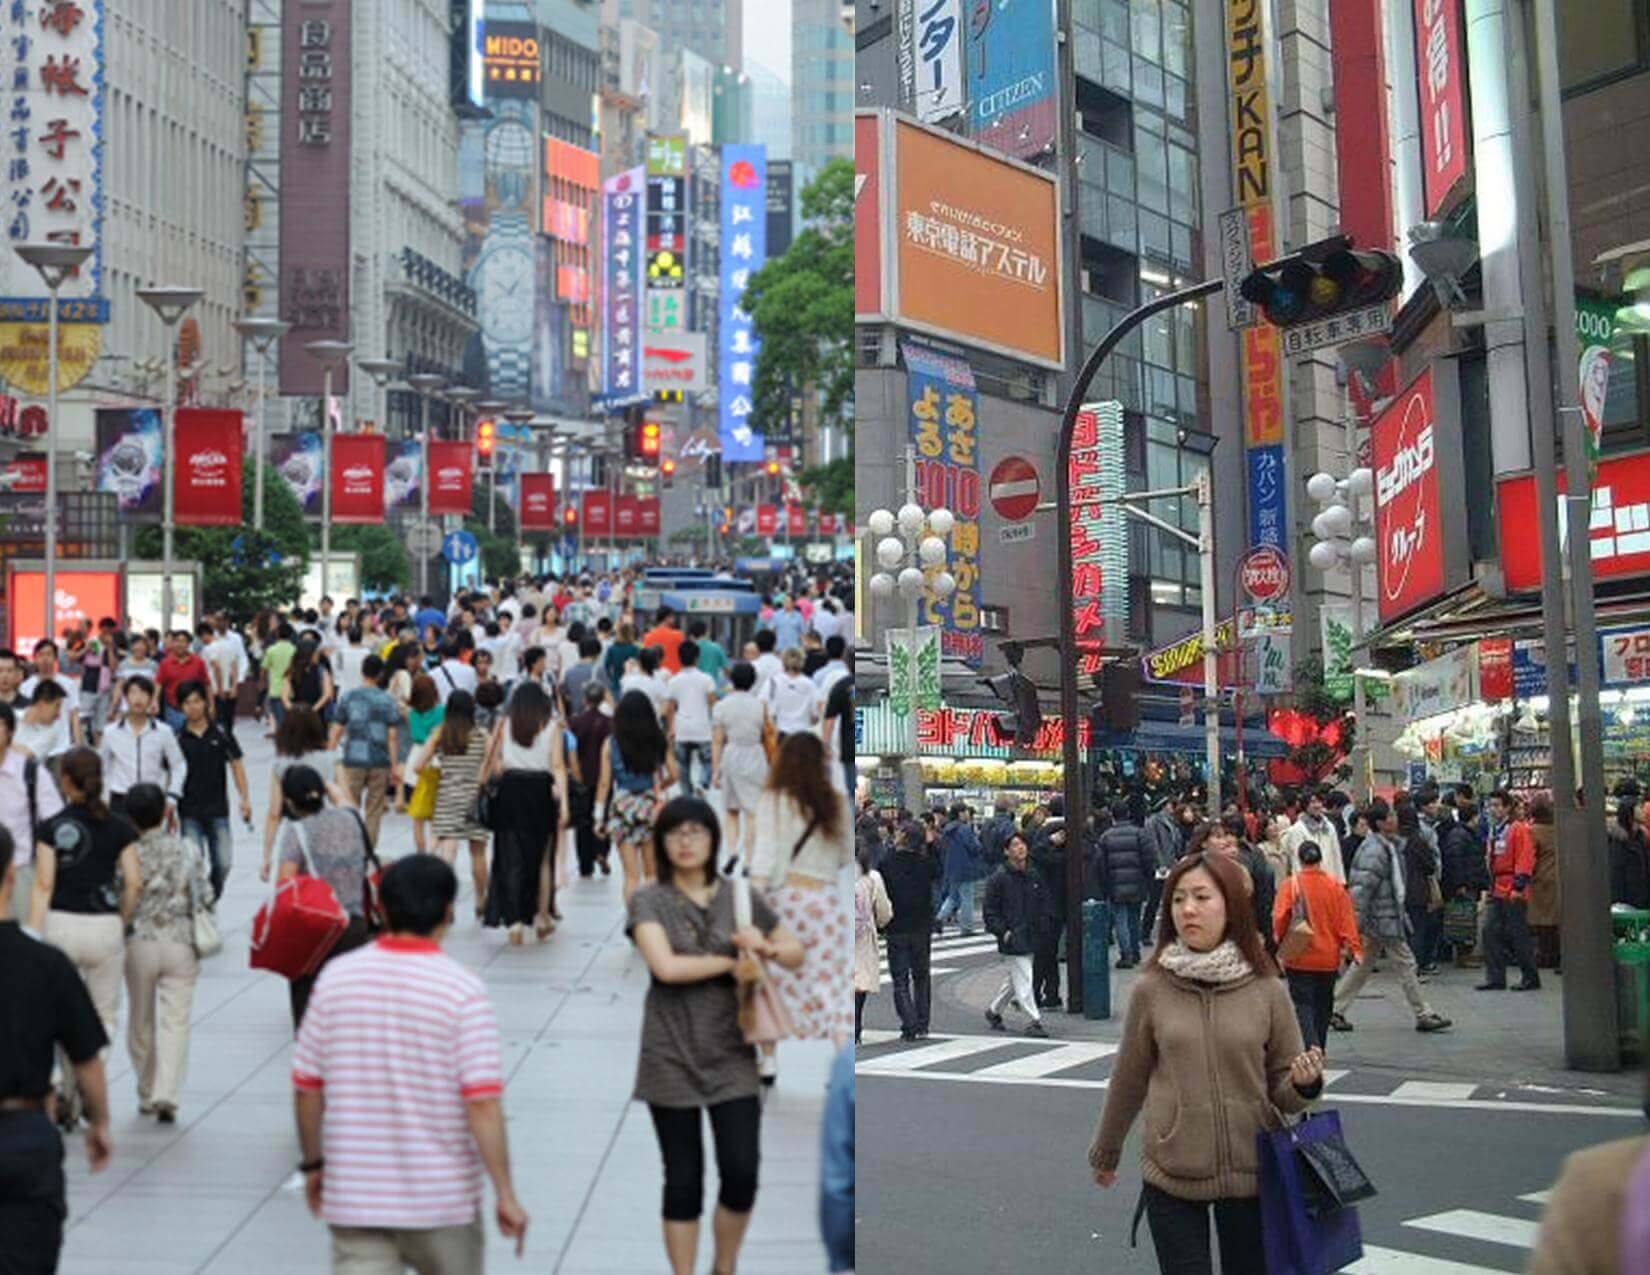 Japan Economy Grows Most in a Year, China Slowest in 3